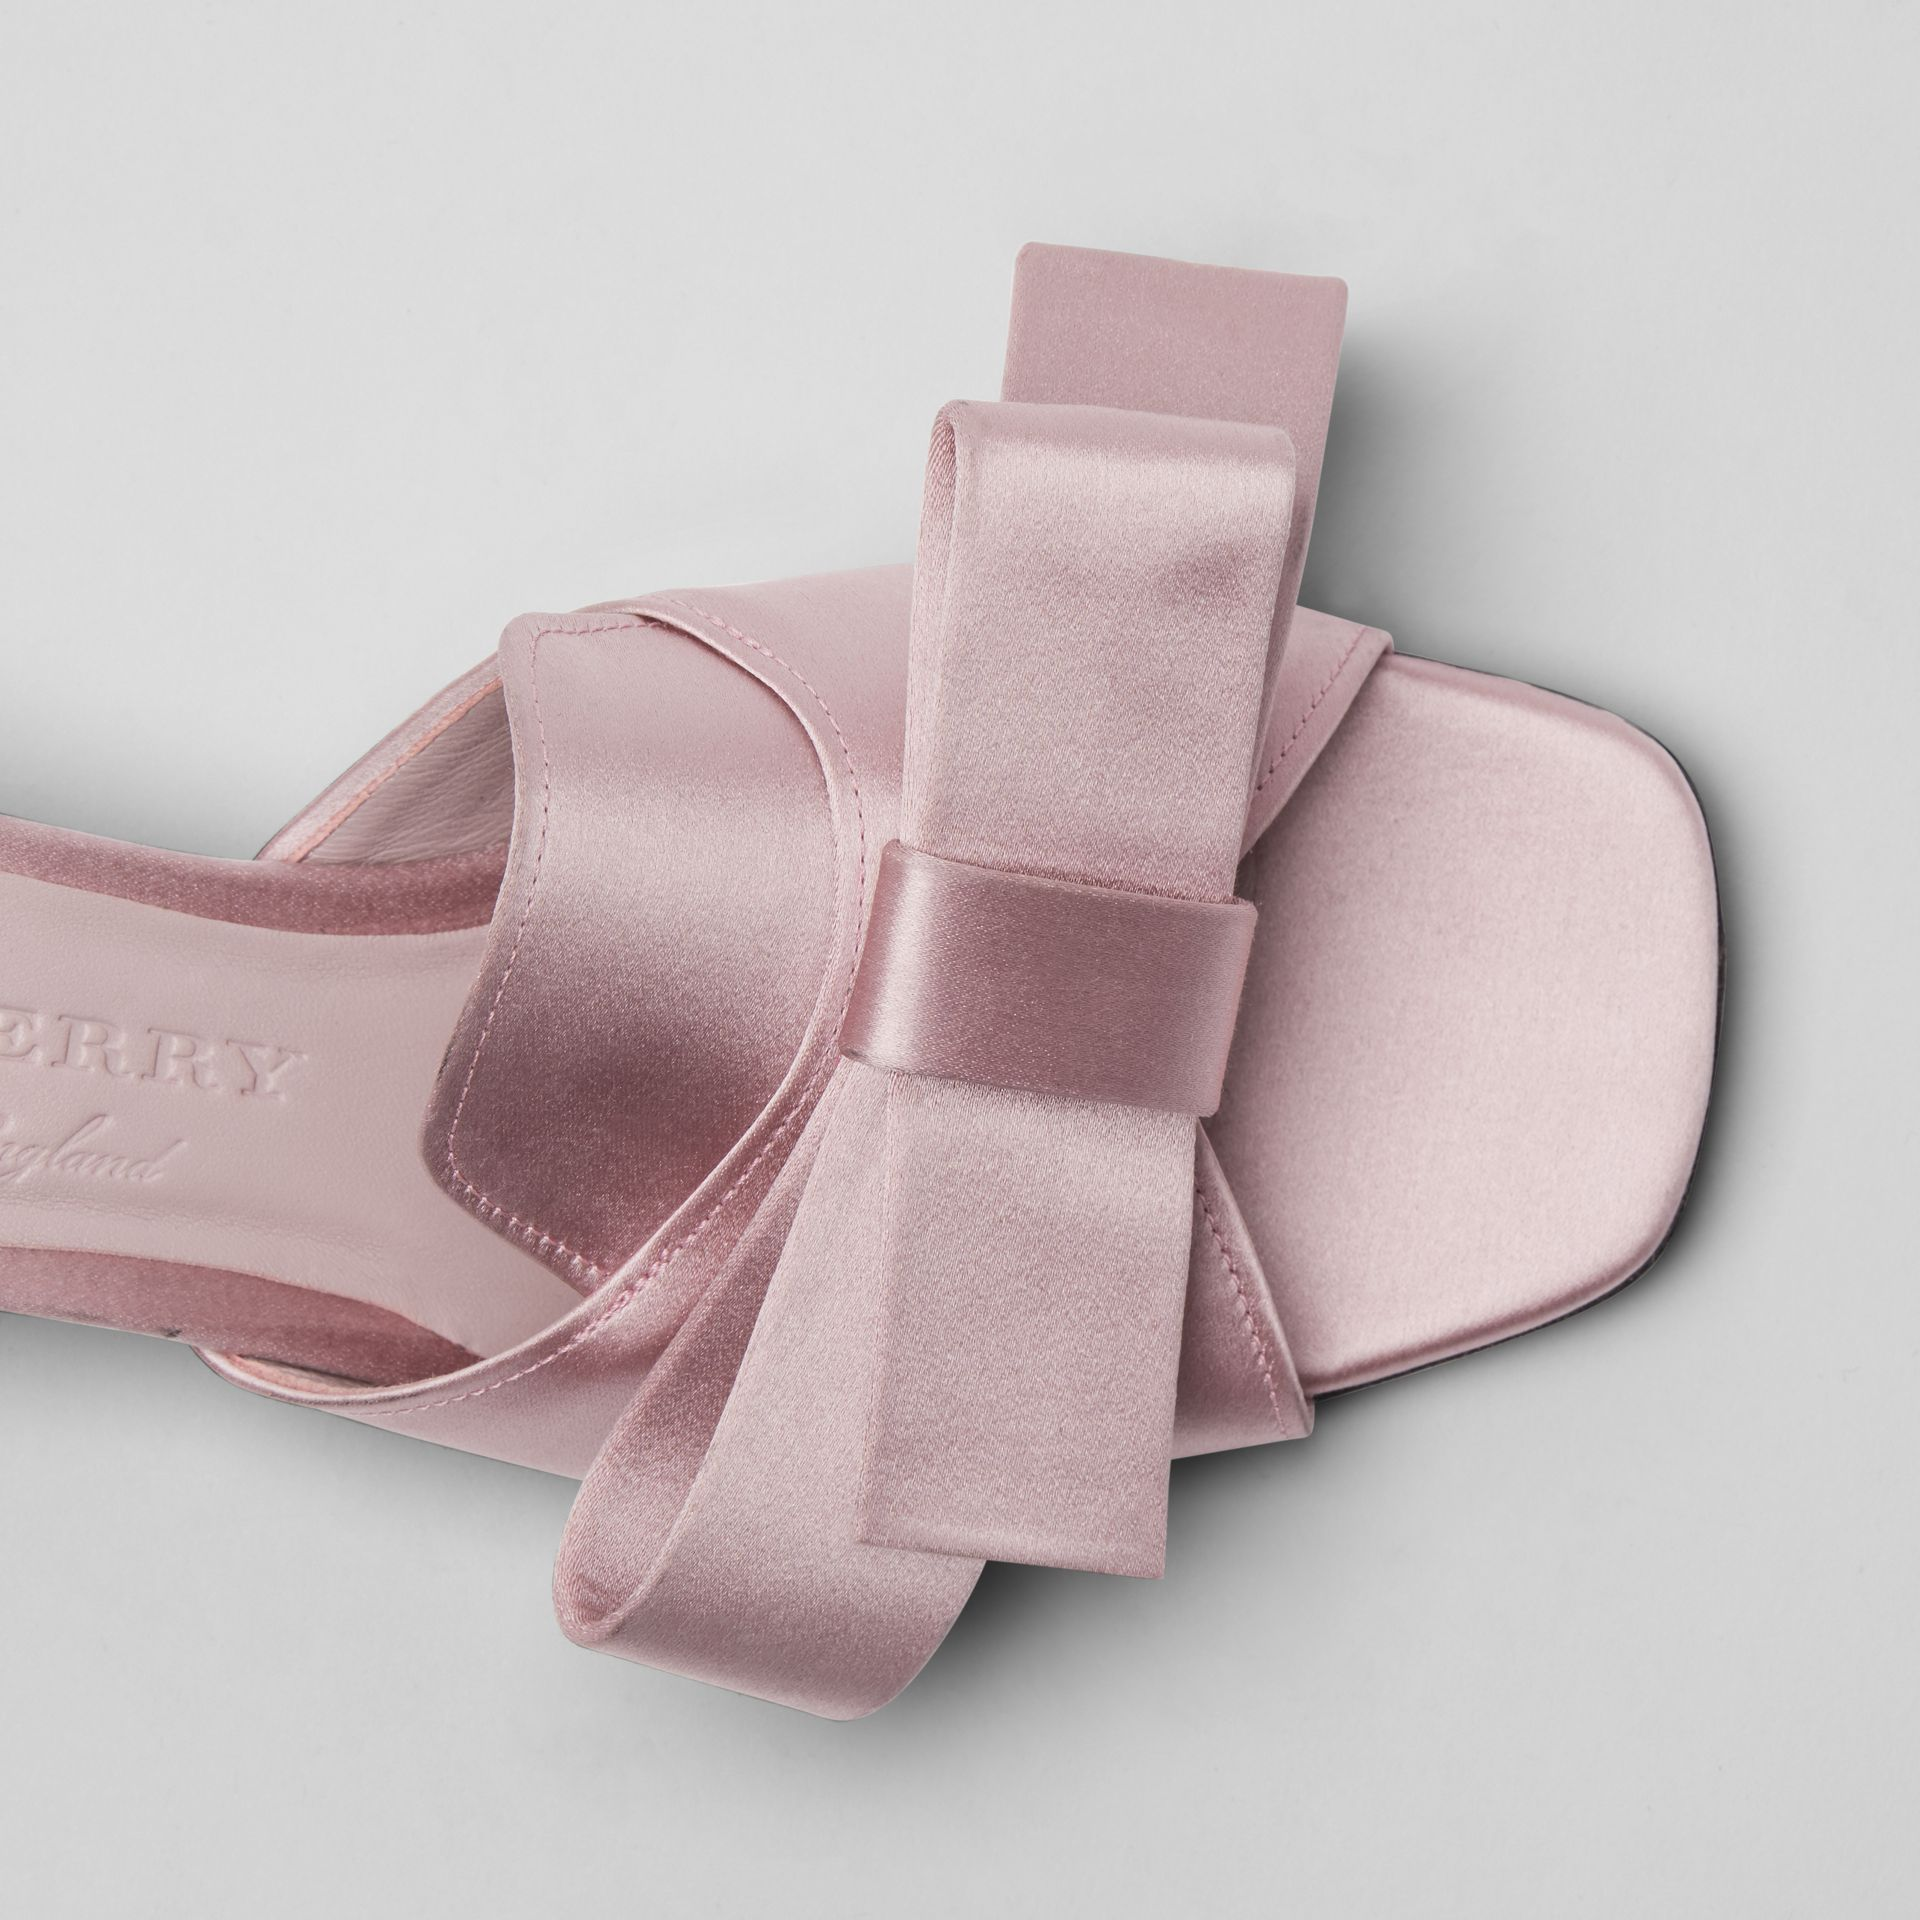 Bow Detail Satin Block-heel Mules in Light Pink Melange - Women | Burberry - gallery image 1